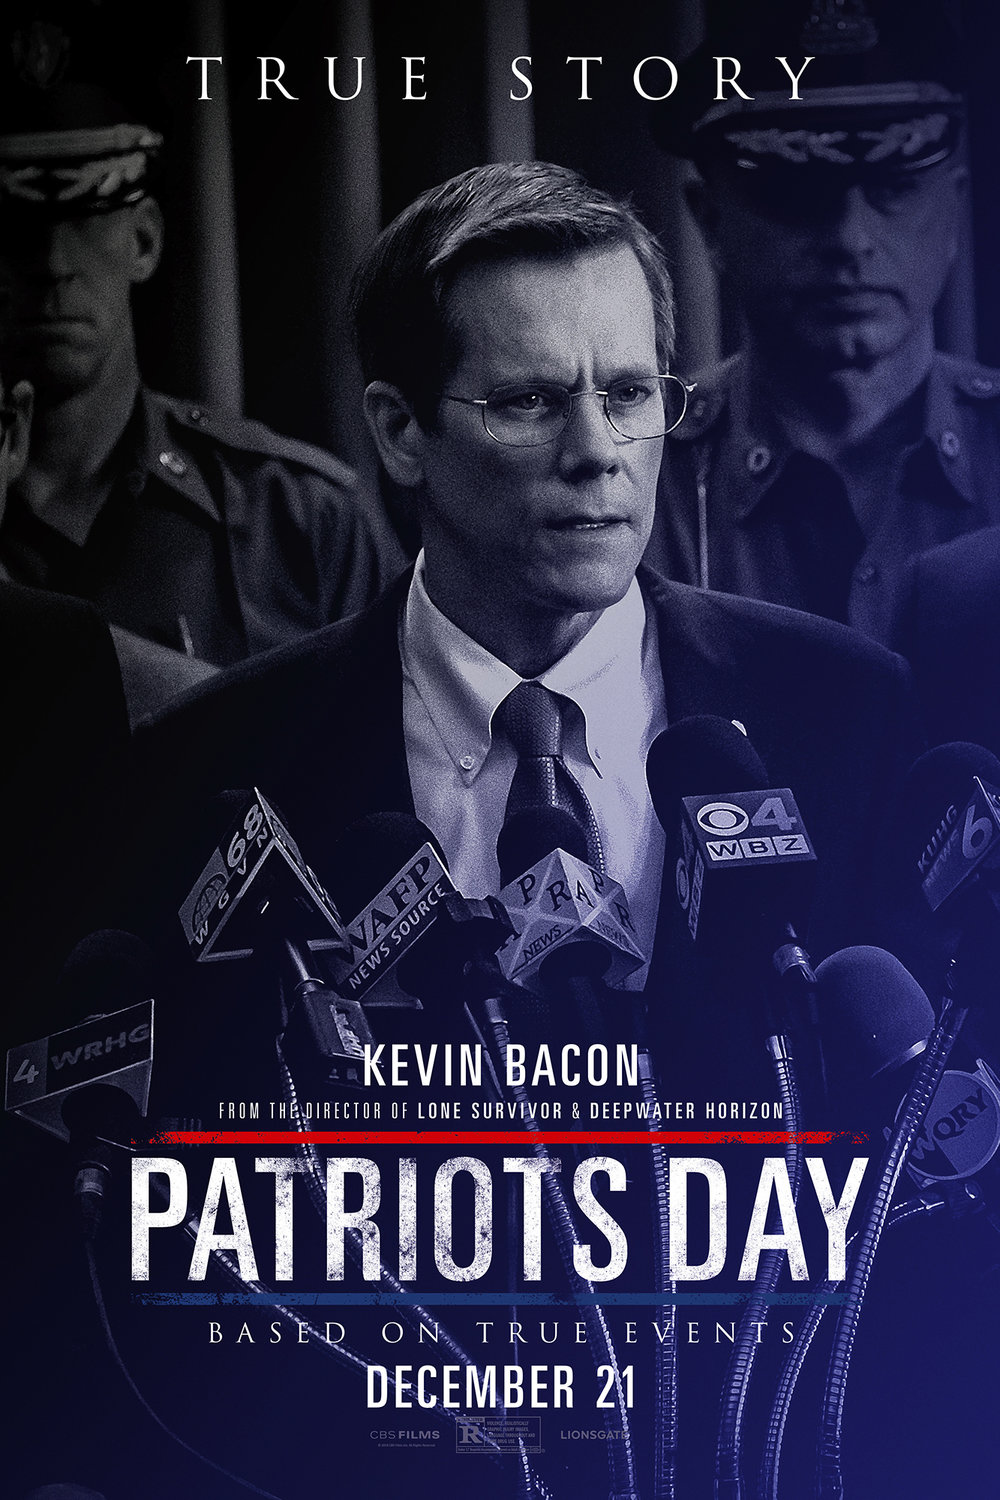 PatriotsDay_KB_48x72_WildPostings_100dpi.jpg